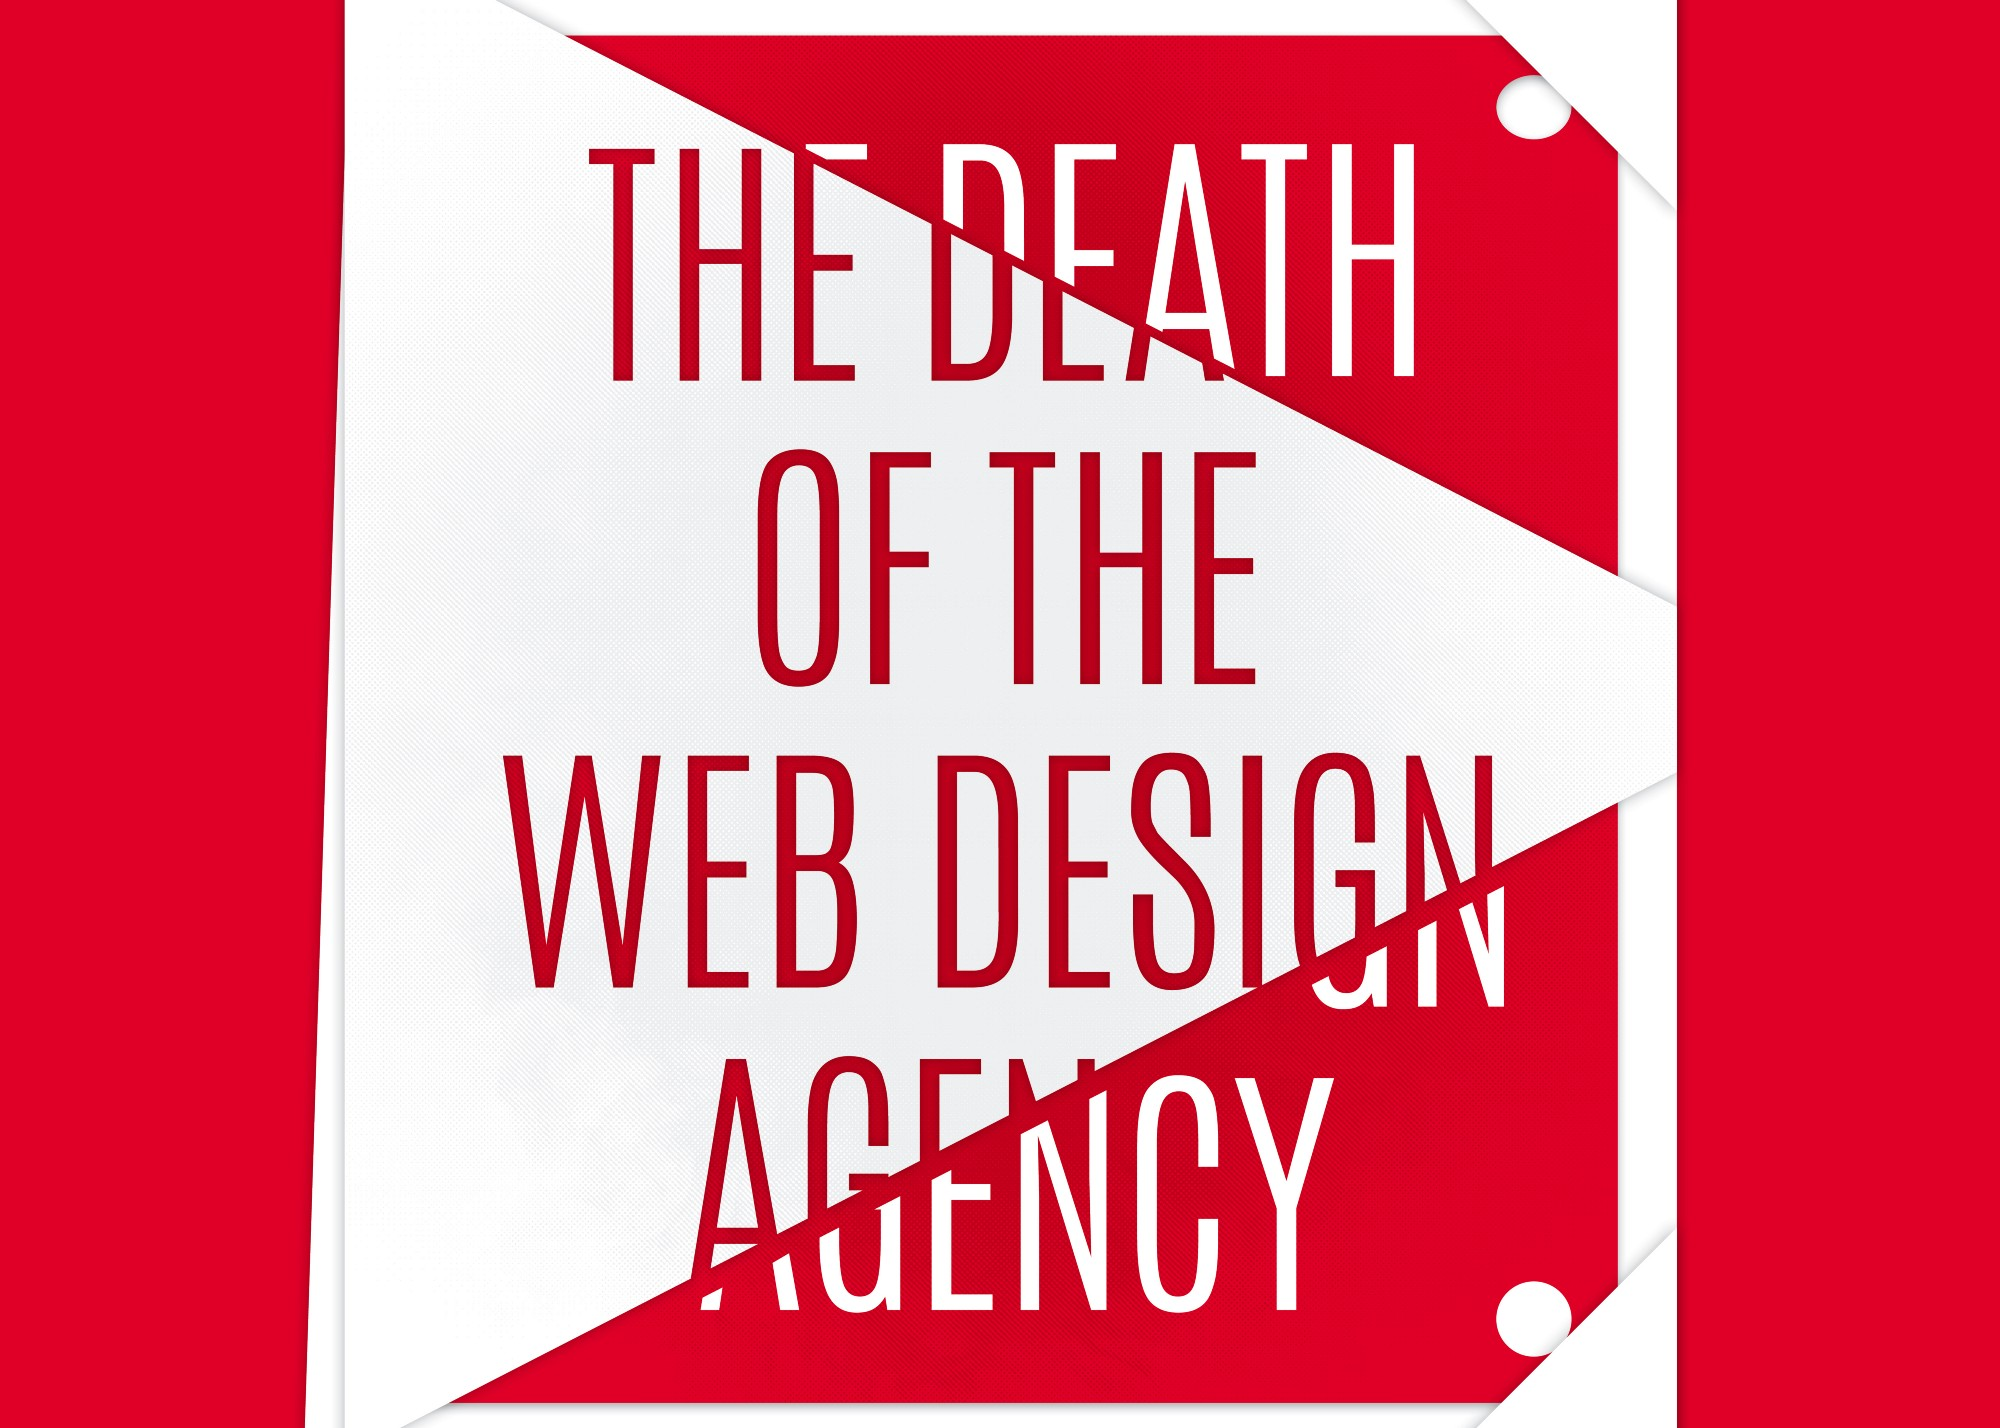 The death of the web design agency